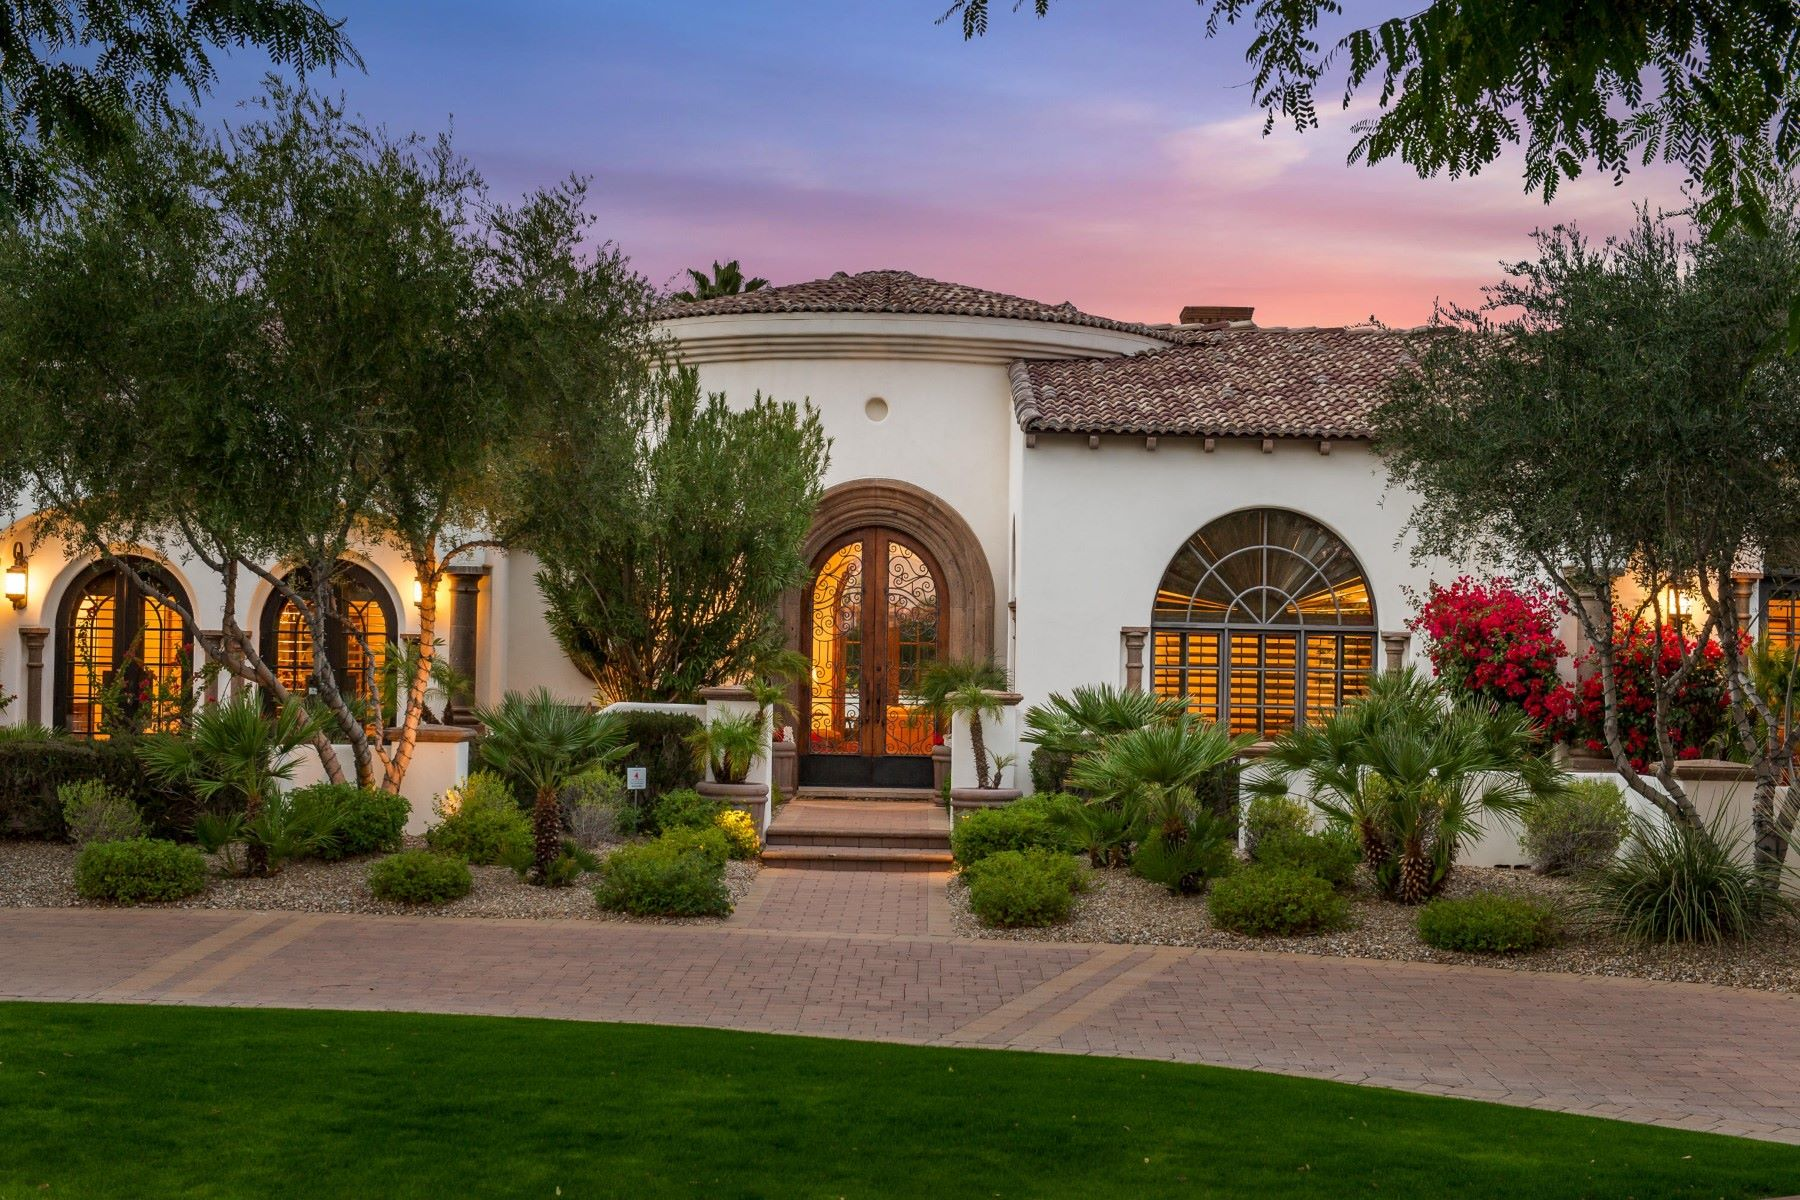 Casa Unifamiliar por un Venta en Timeless Santa Barbara masterpiece 6770 E Bluebird Ln Paradise Valley, Arizona, 85253 Estados Unidos